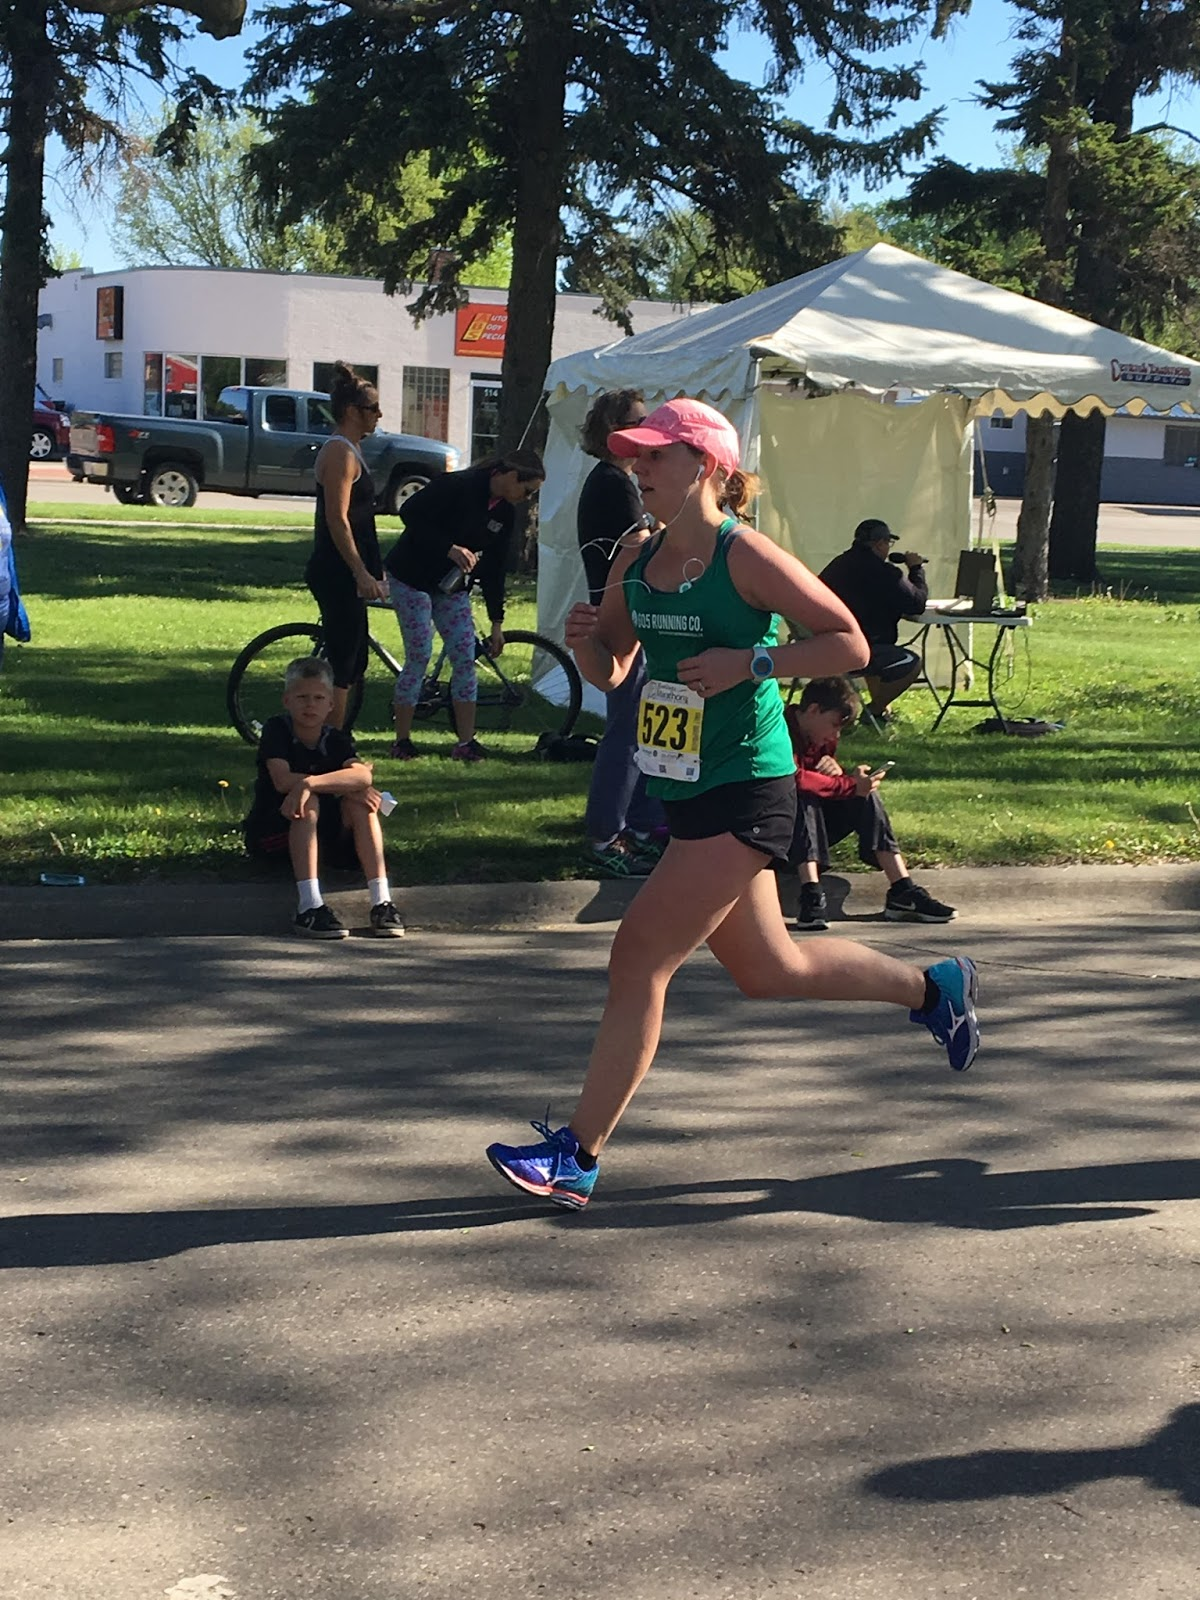 5/13/17 Brookings Half Marathon 2:05:44